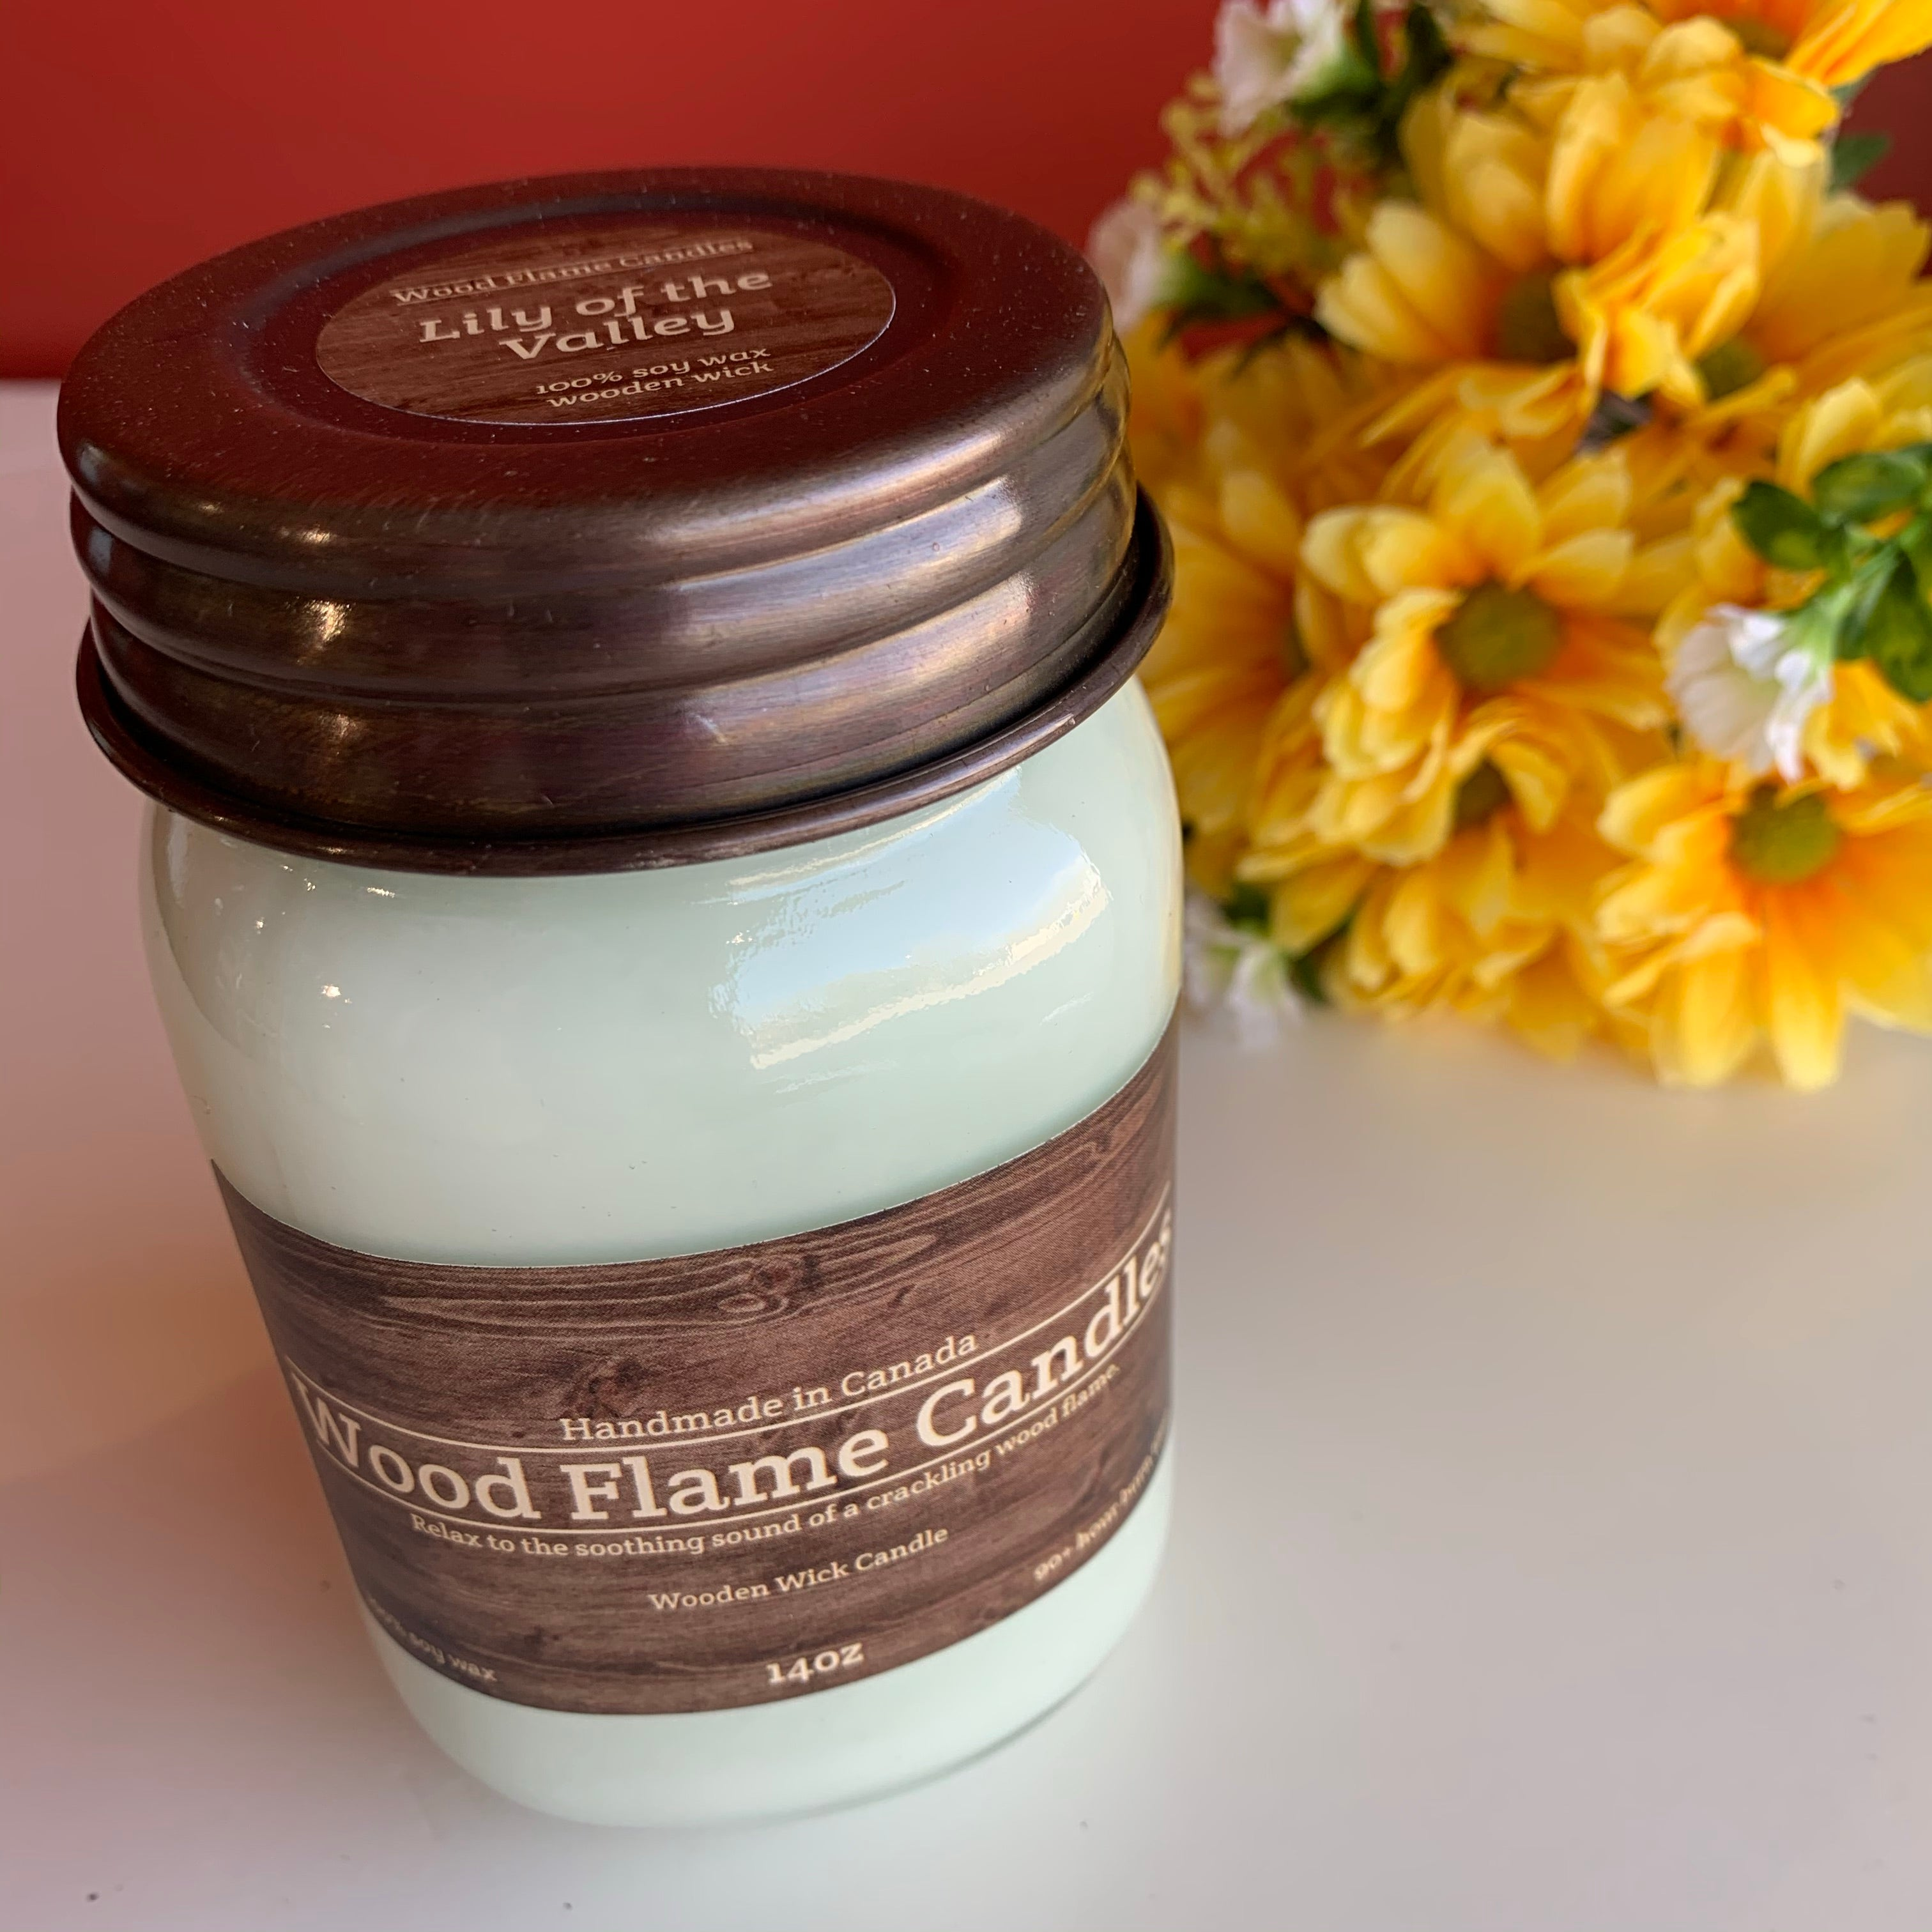 WOOD FLAME CANDLES LILY OF THE VALLEY 14OZ